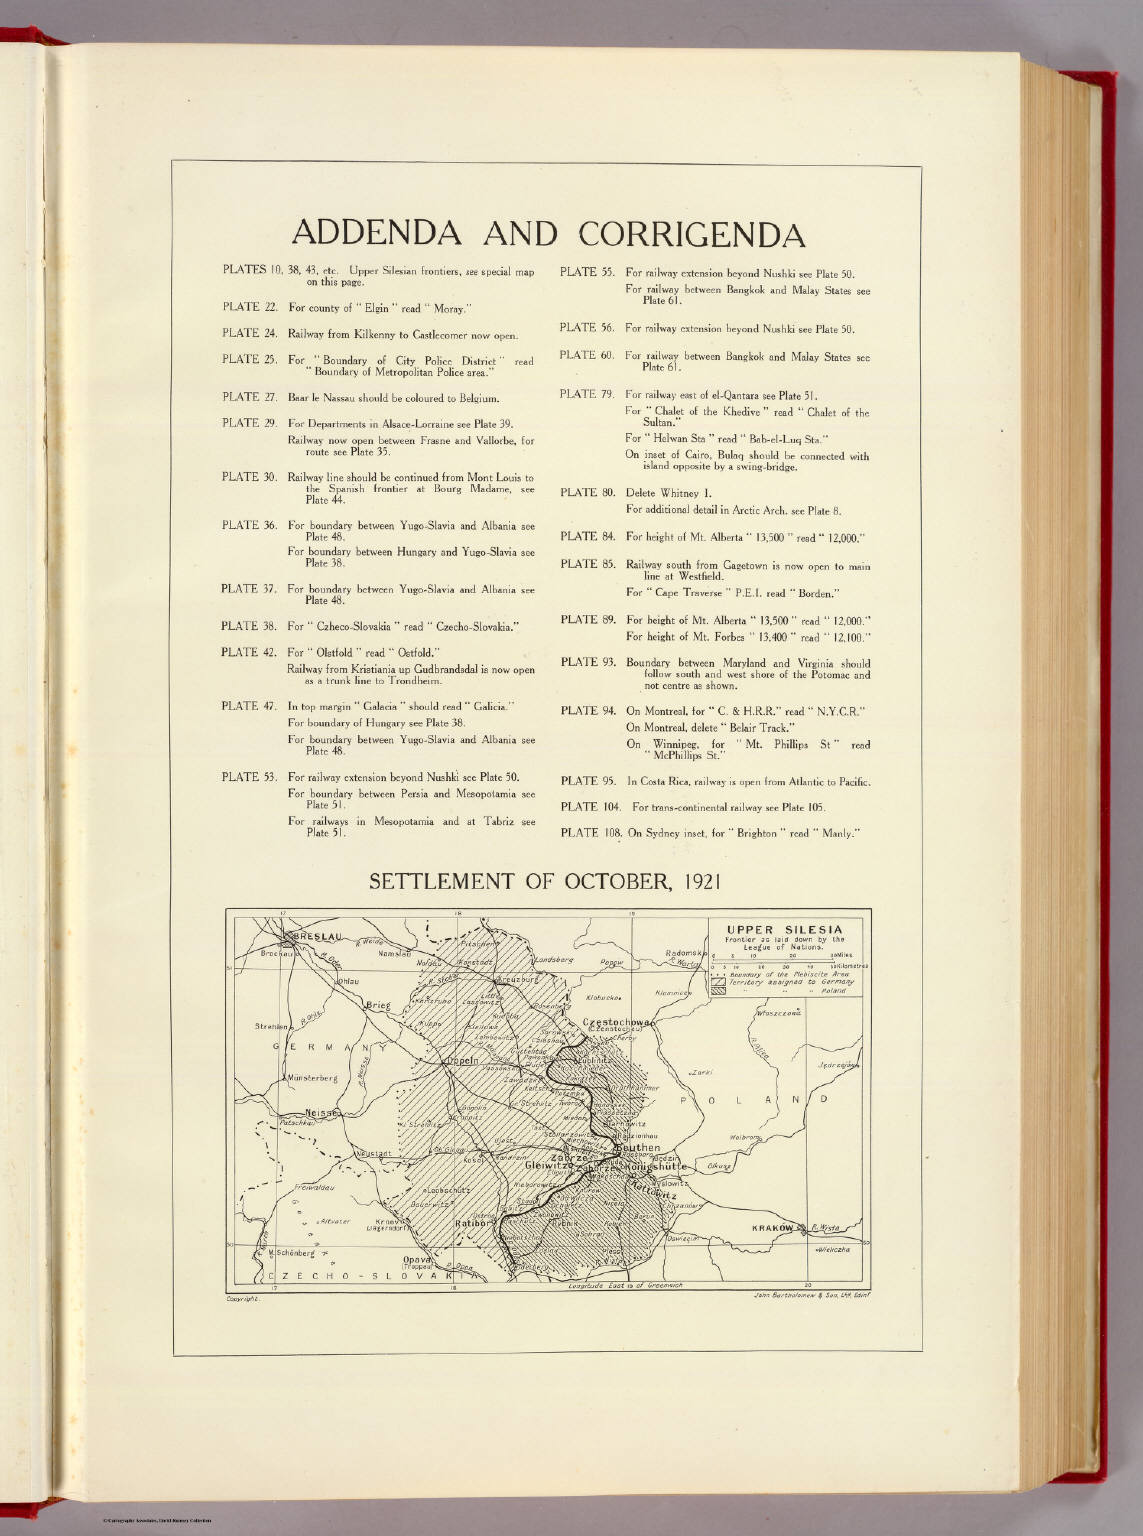 Picture of: Addenda And Corrigenda Upper Silesia 1921 David Rumsey Historical Map Collection